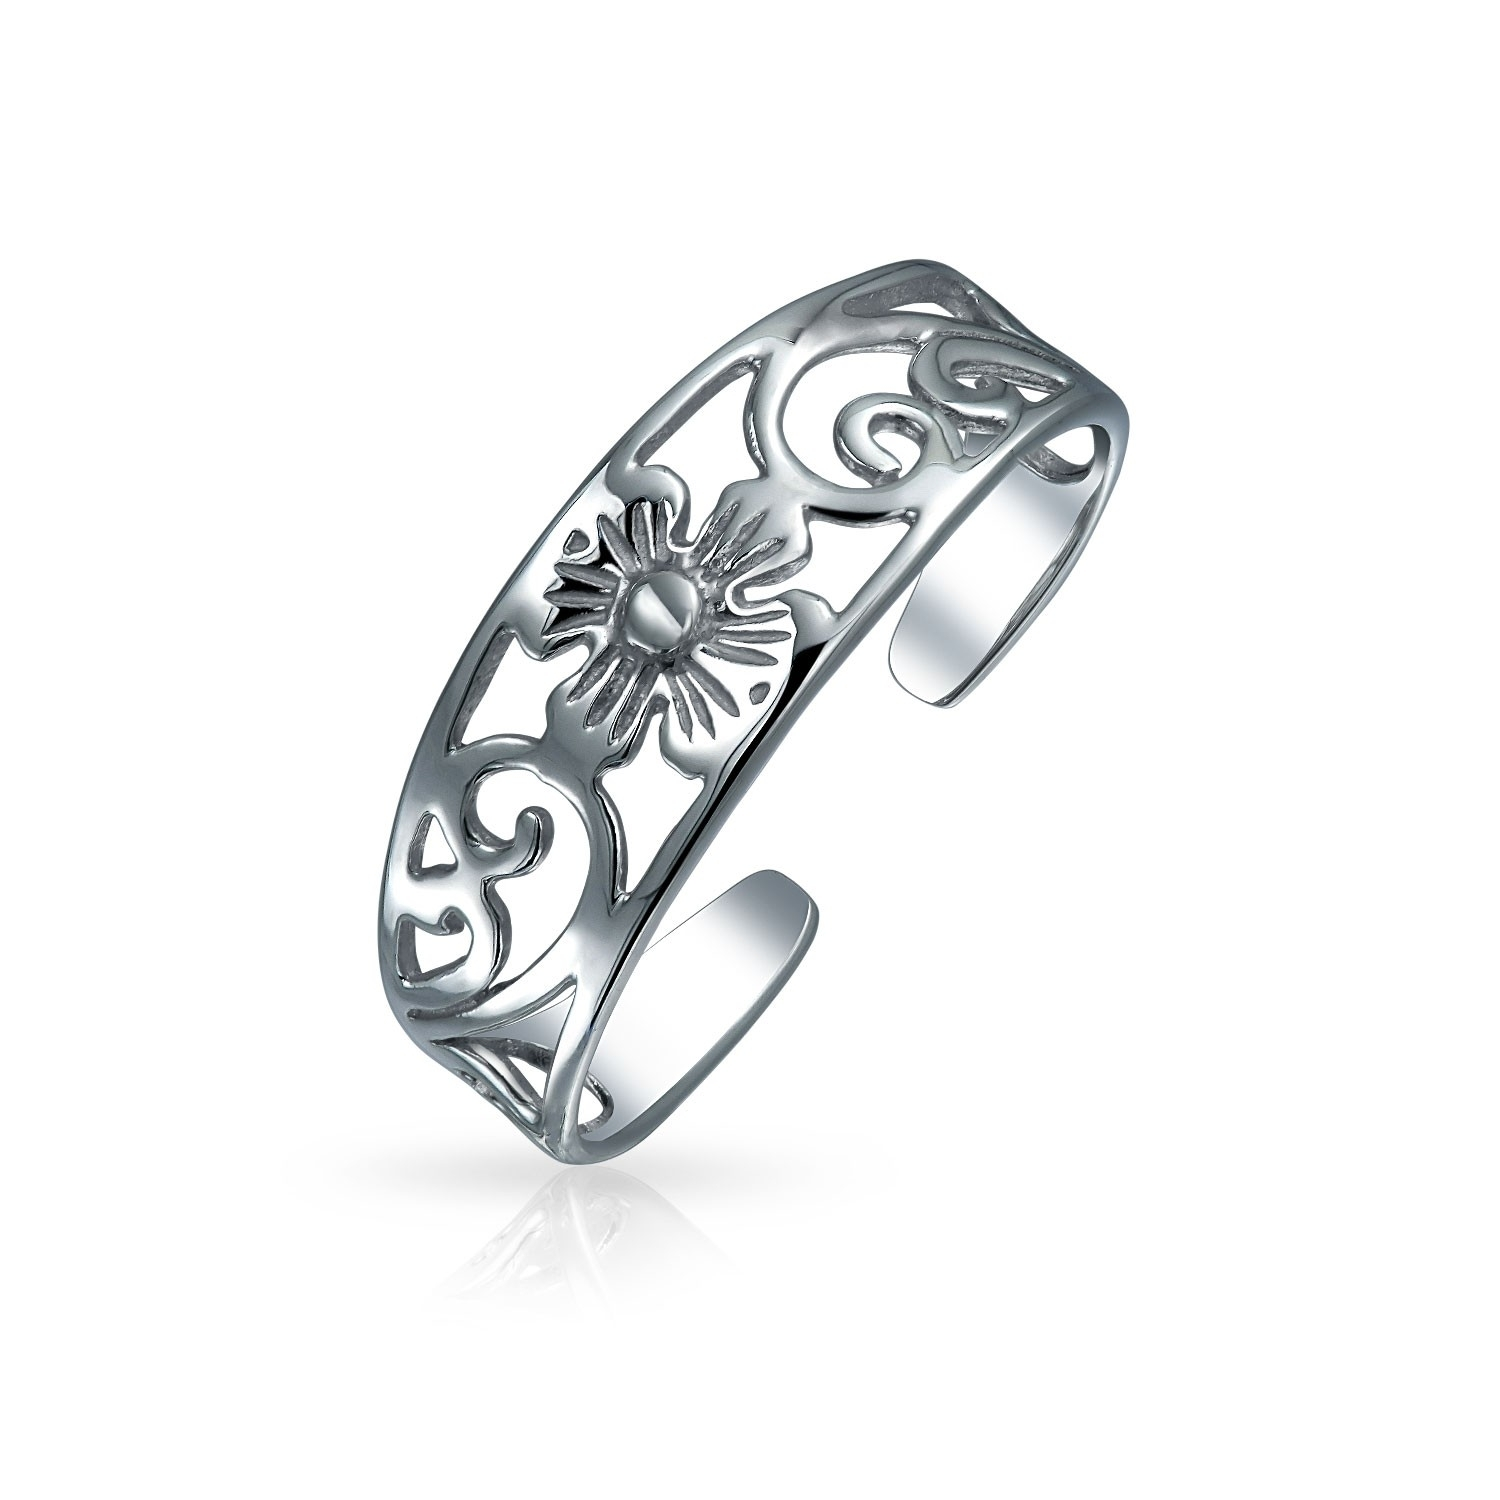 Adjustable Filigree Flower Toe Ring 925 Sterling Silver Midi Rings In Latest Sterling Silver Toe Rings (Gallery 4 of 15)